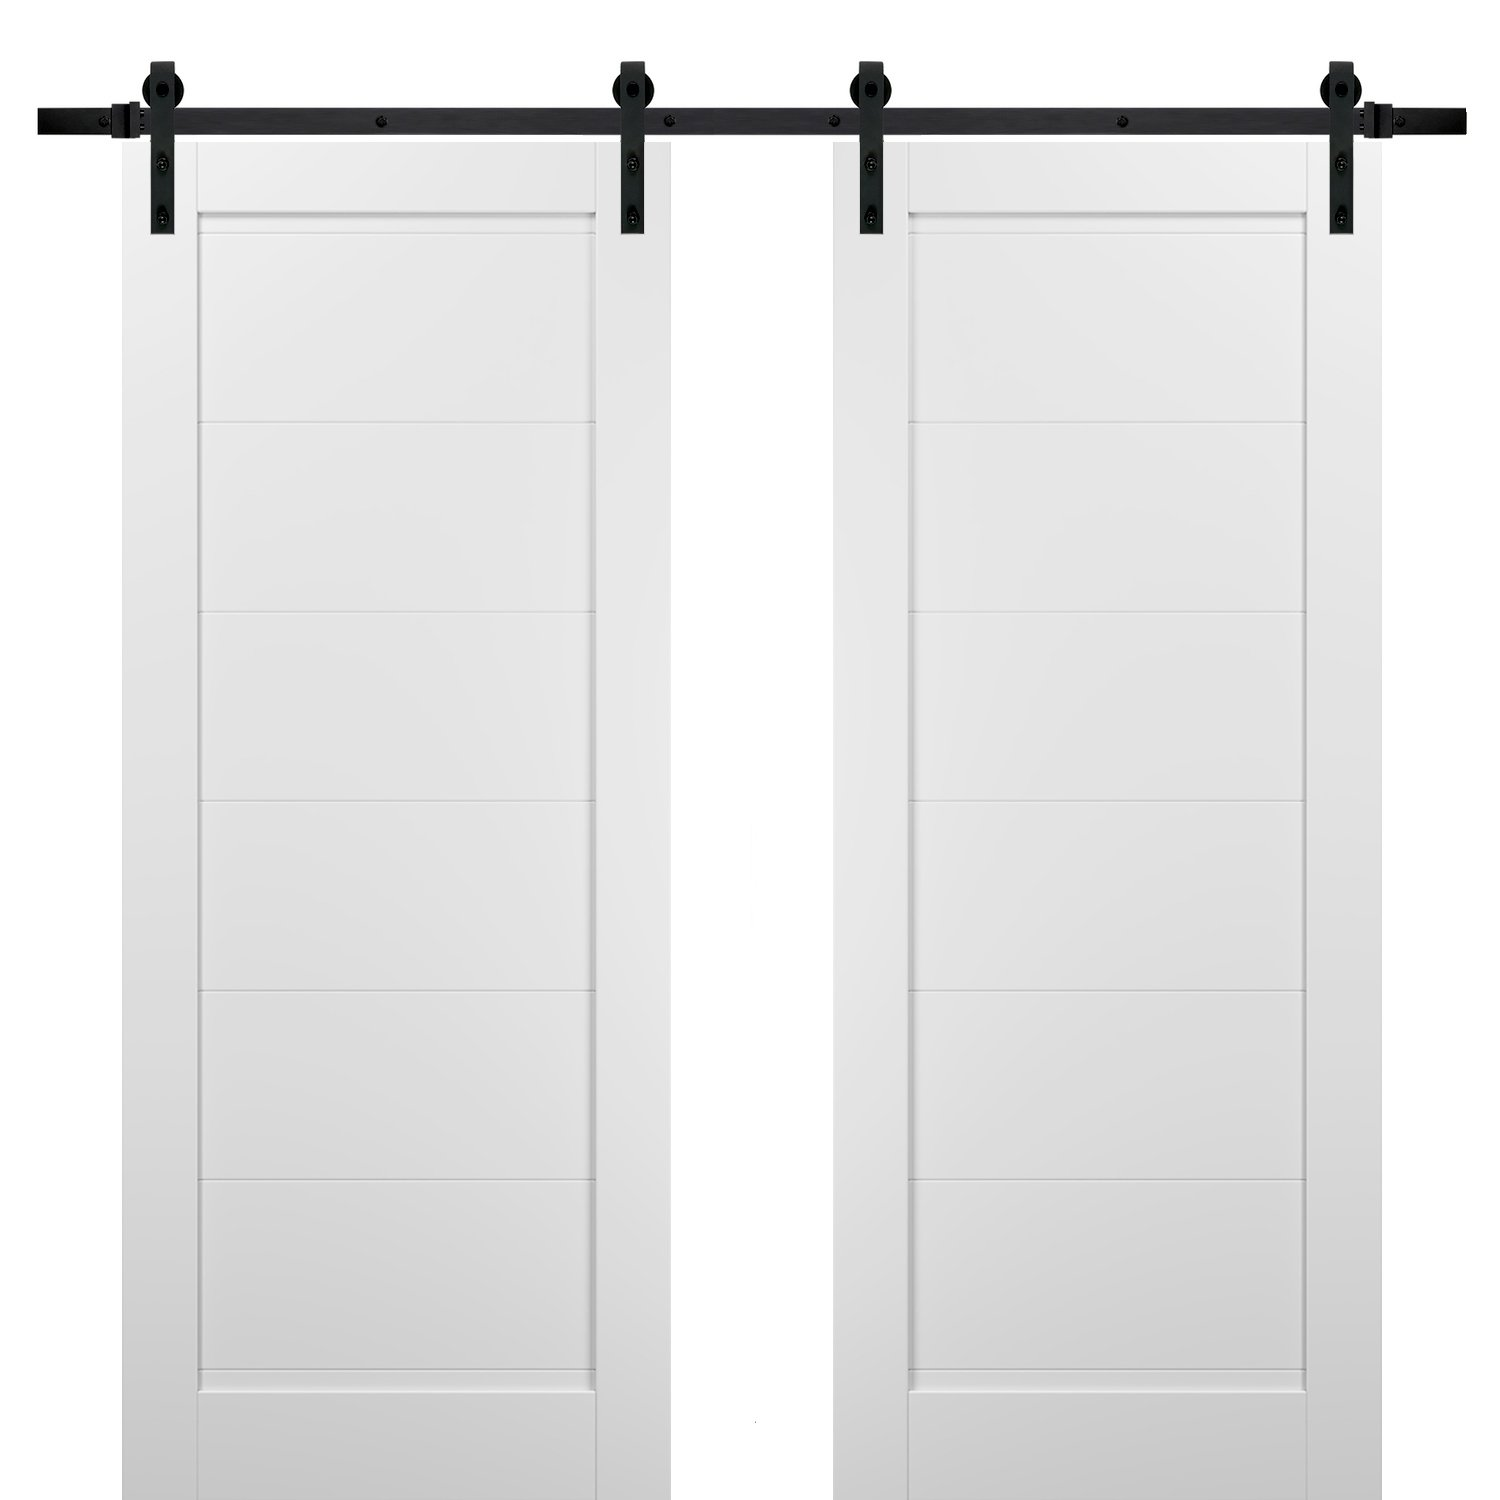 Top Mount 13FT Rail Sturdy Set Quadro 4055 White Silk with Frosted Opaque Glass Kitchen Lite Wooden Solid Panel Interior Bedroom Bathroom Door Sliding Double Barn Doors 36 x 80 with Hardware